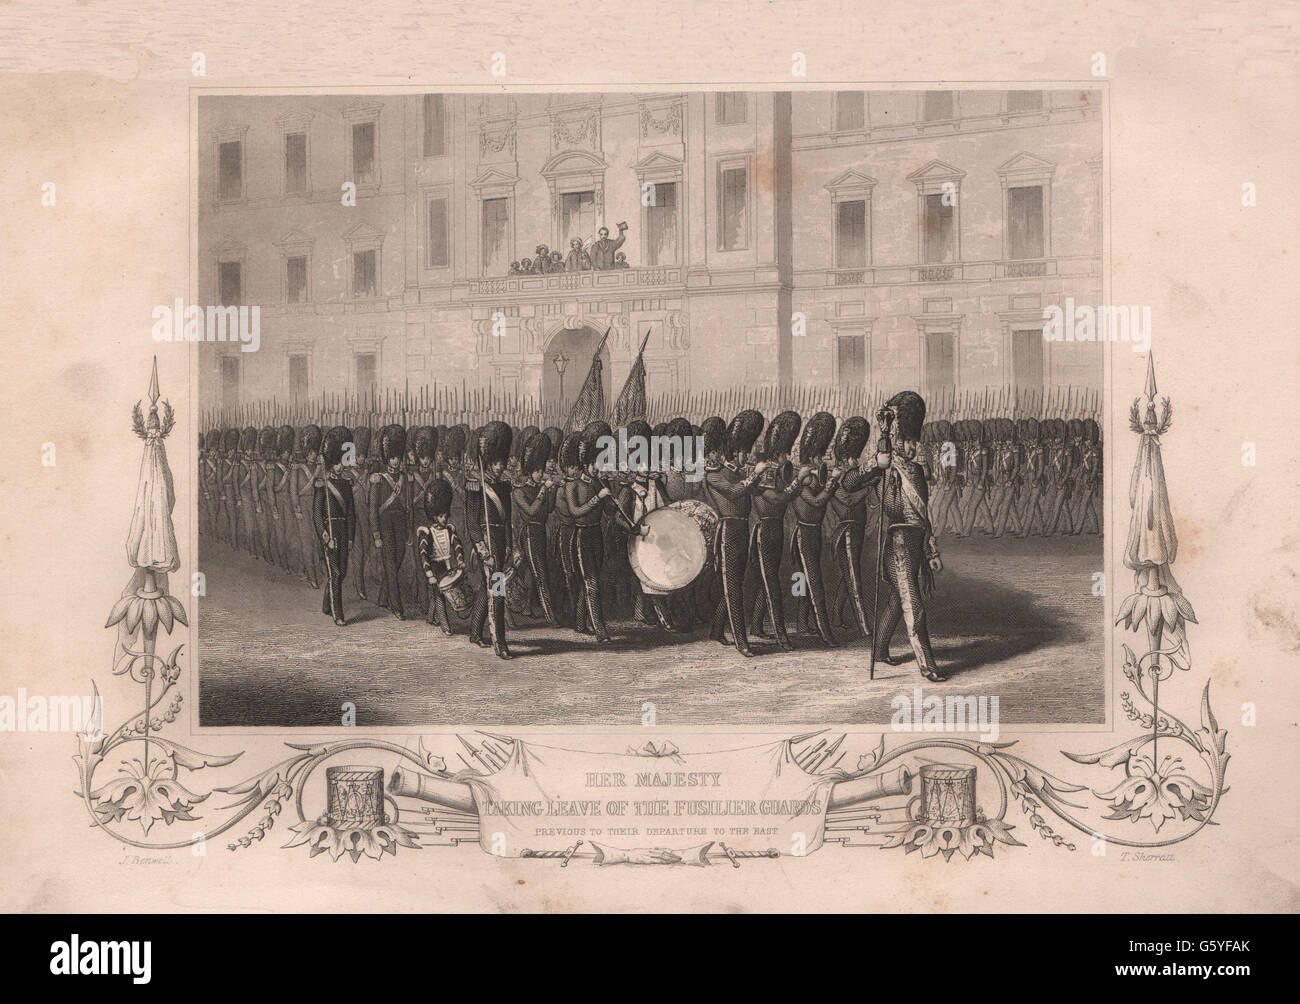 CRIMEAN WAR: Queen Victoria taking leave of the Fusilier guards, print 1860 - Stock Image